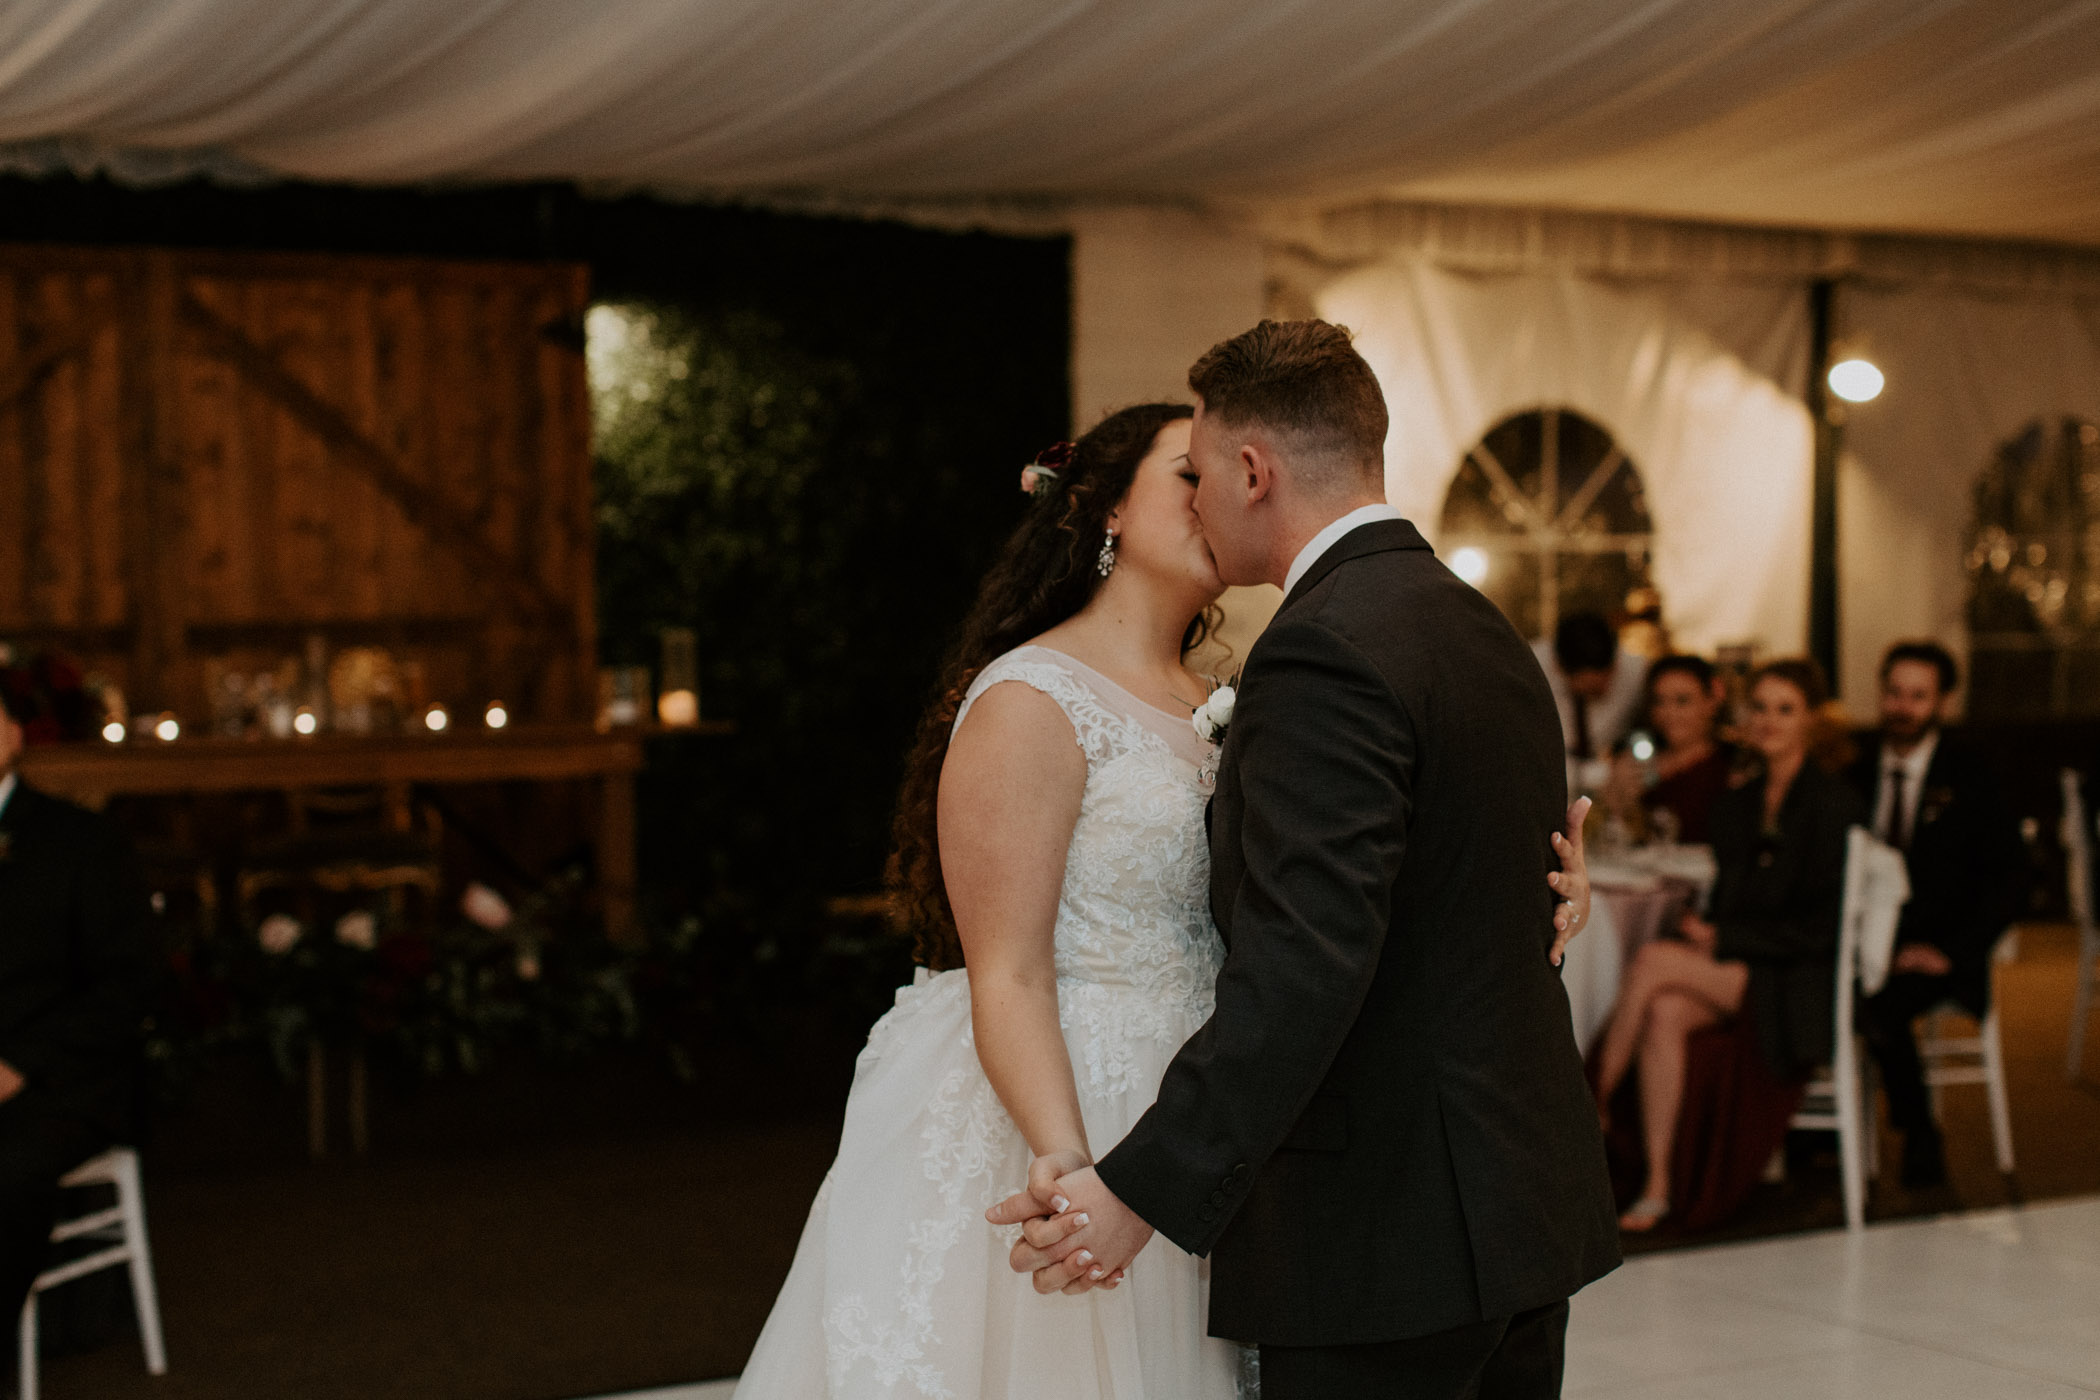 Bride and groom kissing romantically during their first dance